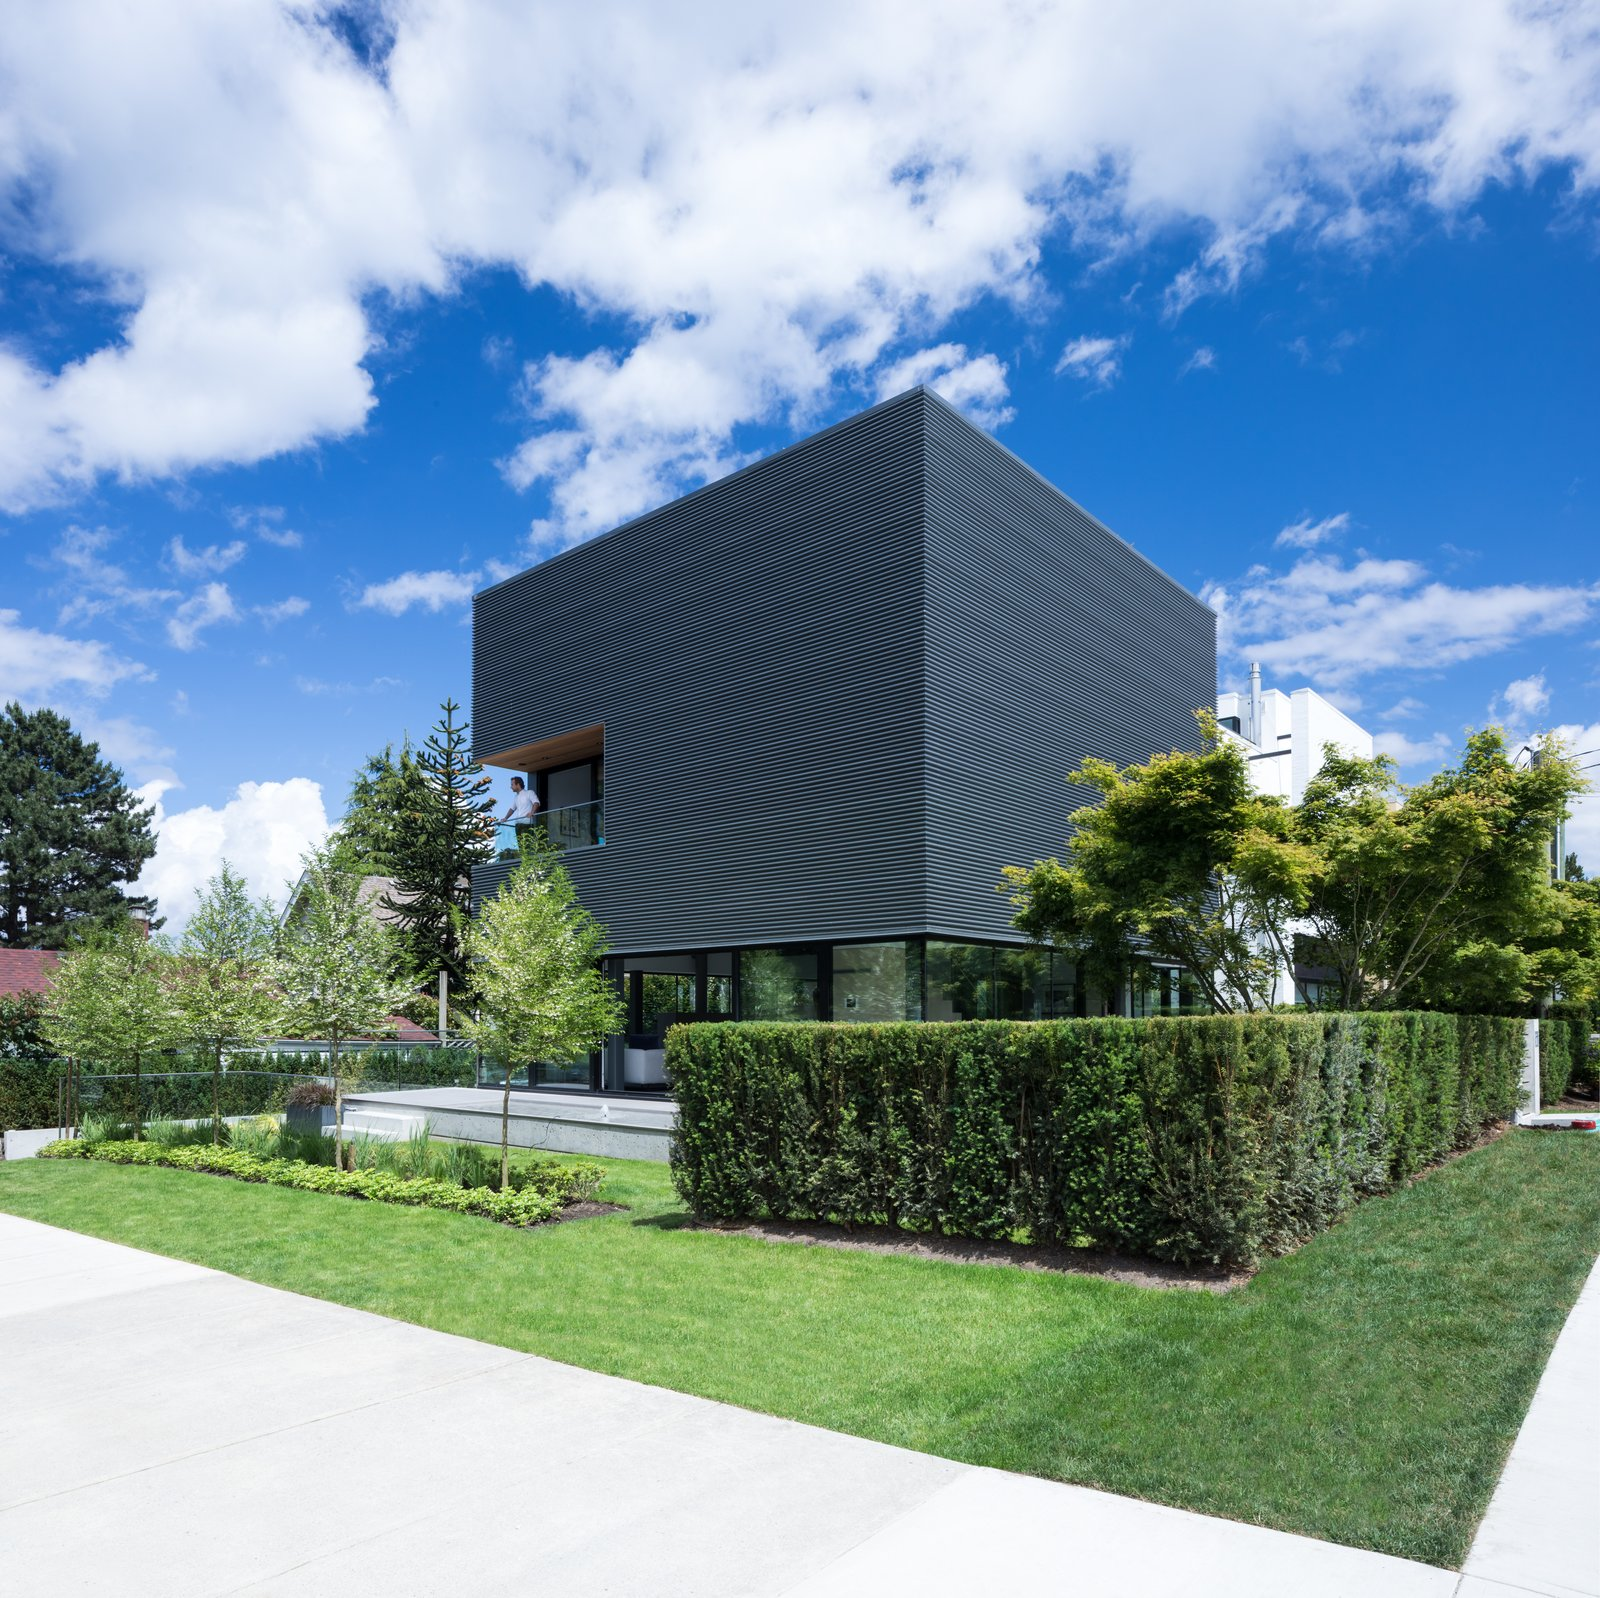 Exterior, House Building Type, and Metal Siding Material  Photo 1 of 12 in Wrapped in Galvanized Steel, 'Cube House' in Vancouver Asks $12.8M